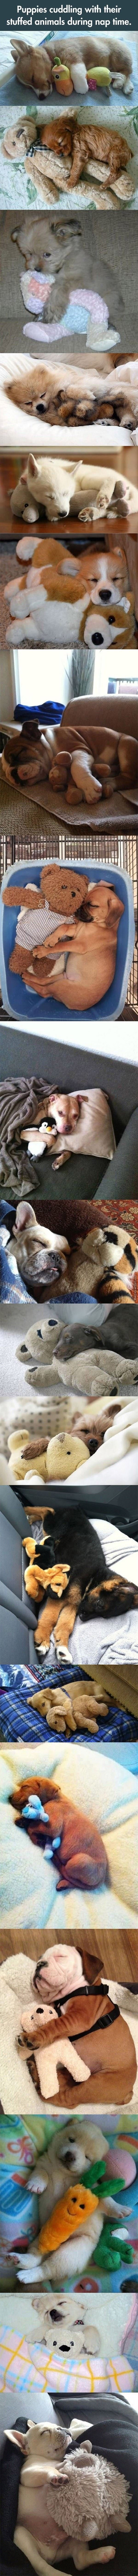 Cute Puppies Sleepin With Stuffed Toys: The Compilation